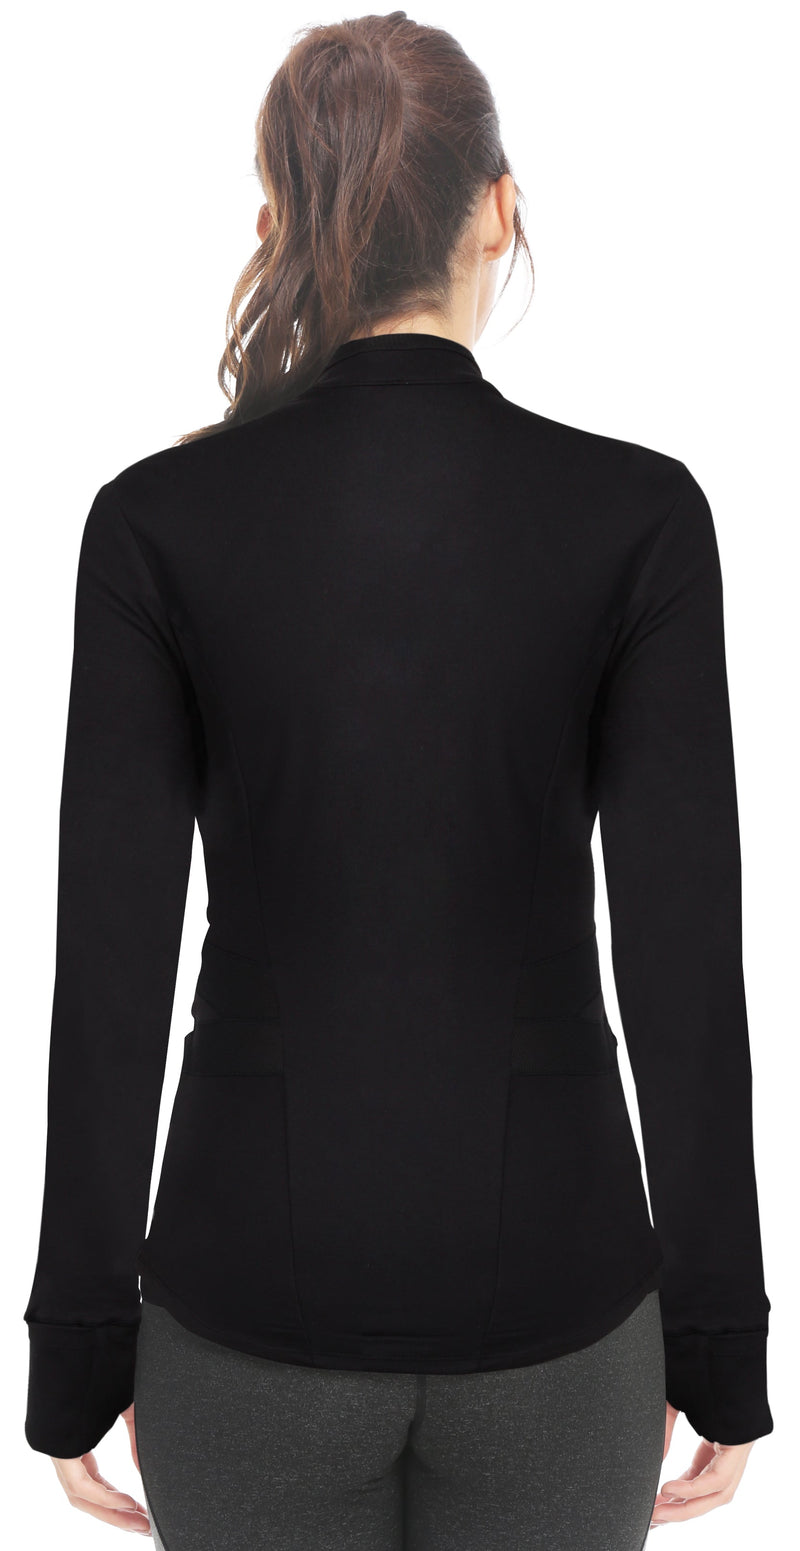 Womens Sports Jacket Slim Fit Full-Zip - Black